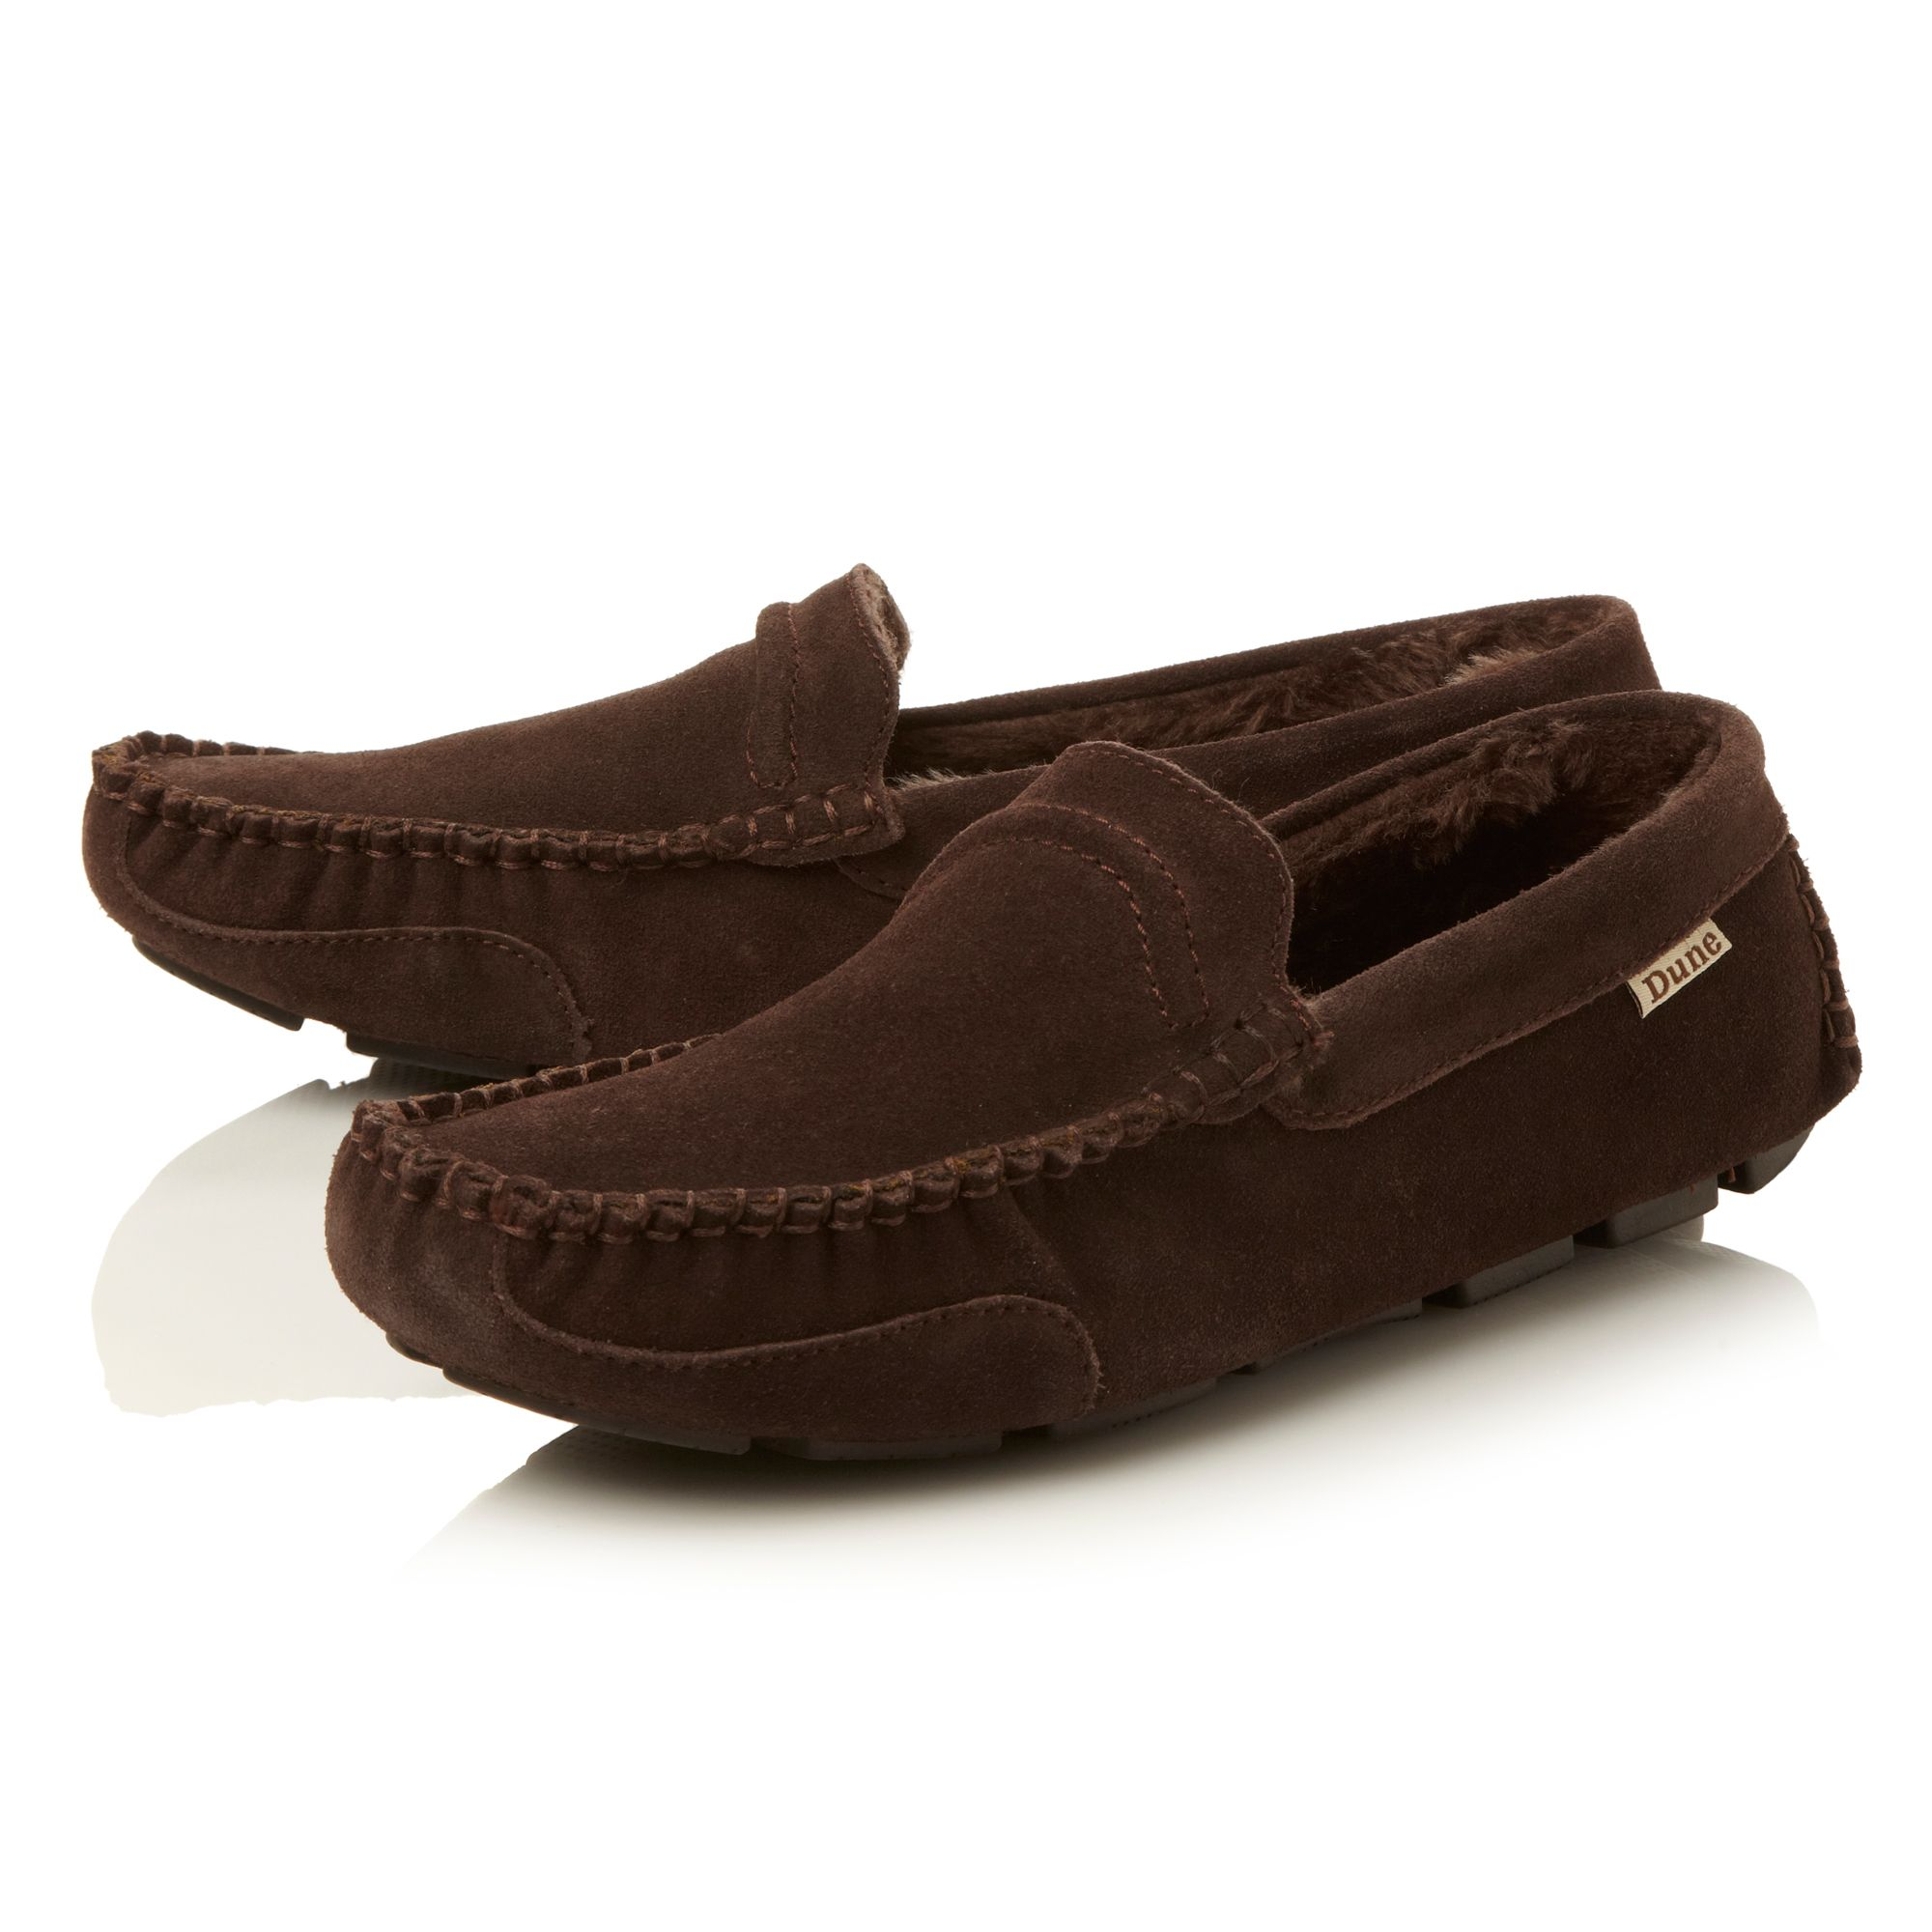 Fur lined driver slipper